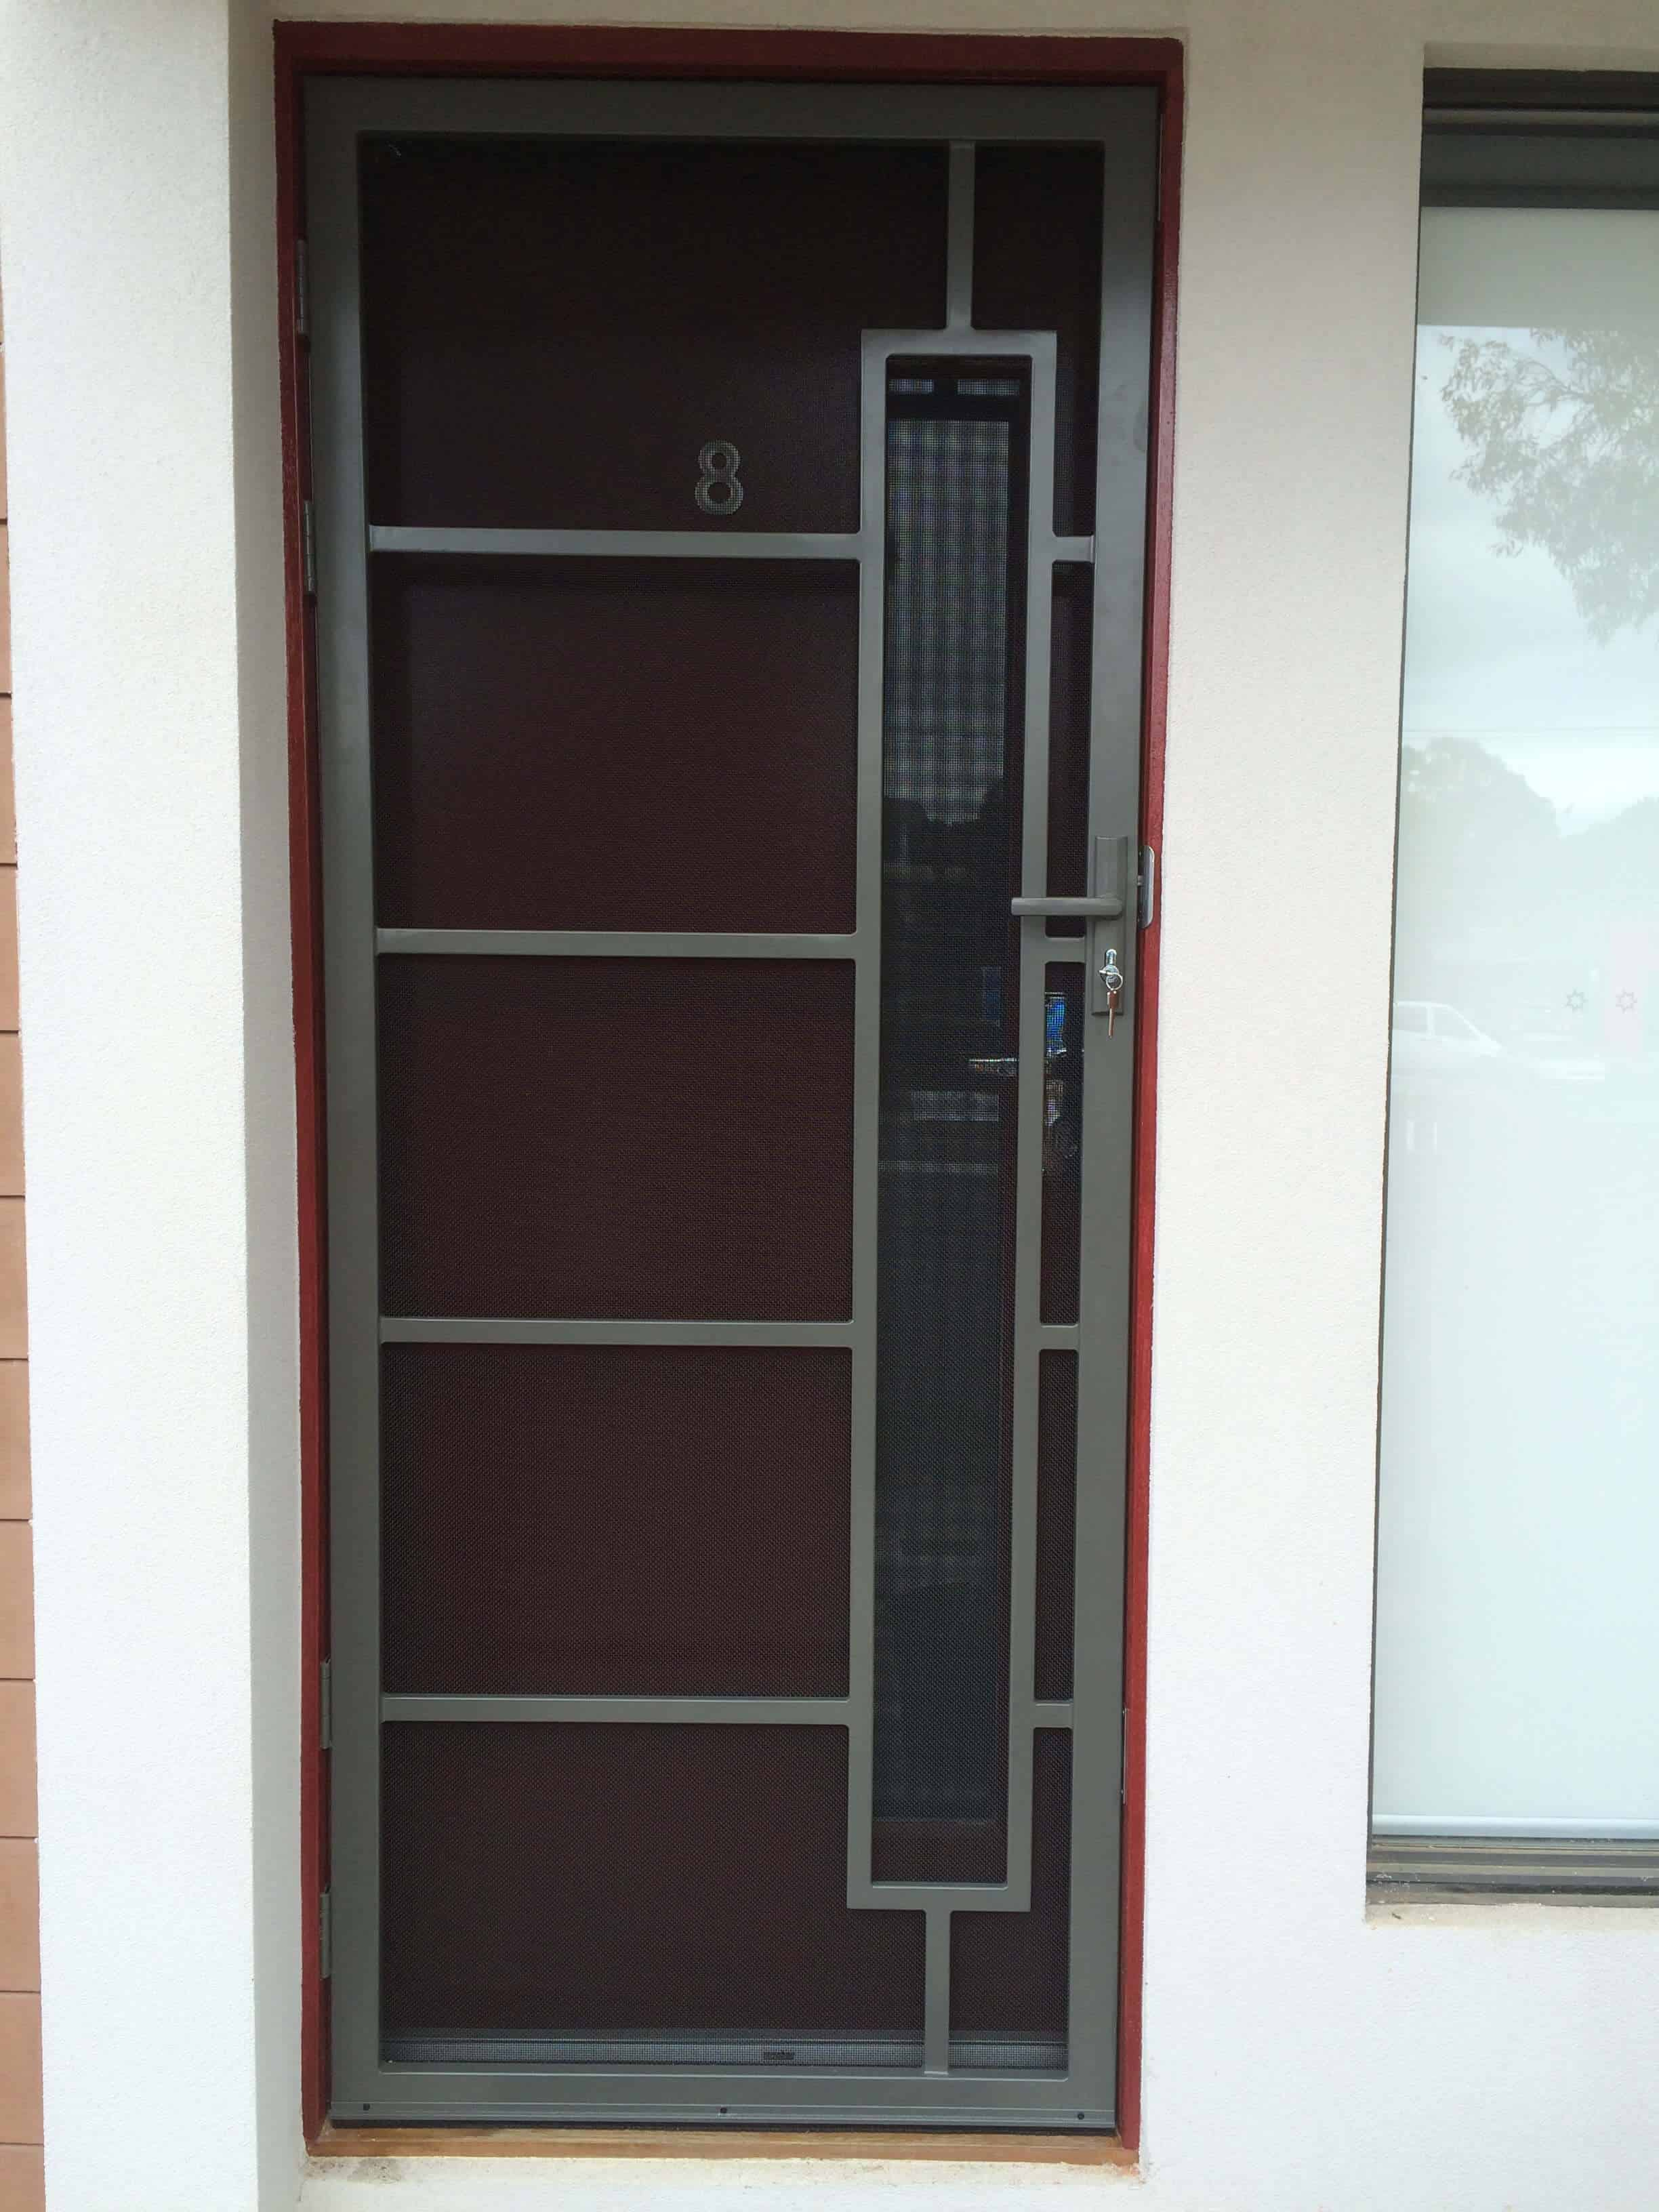 Brightside Security Door